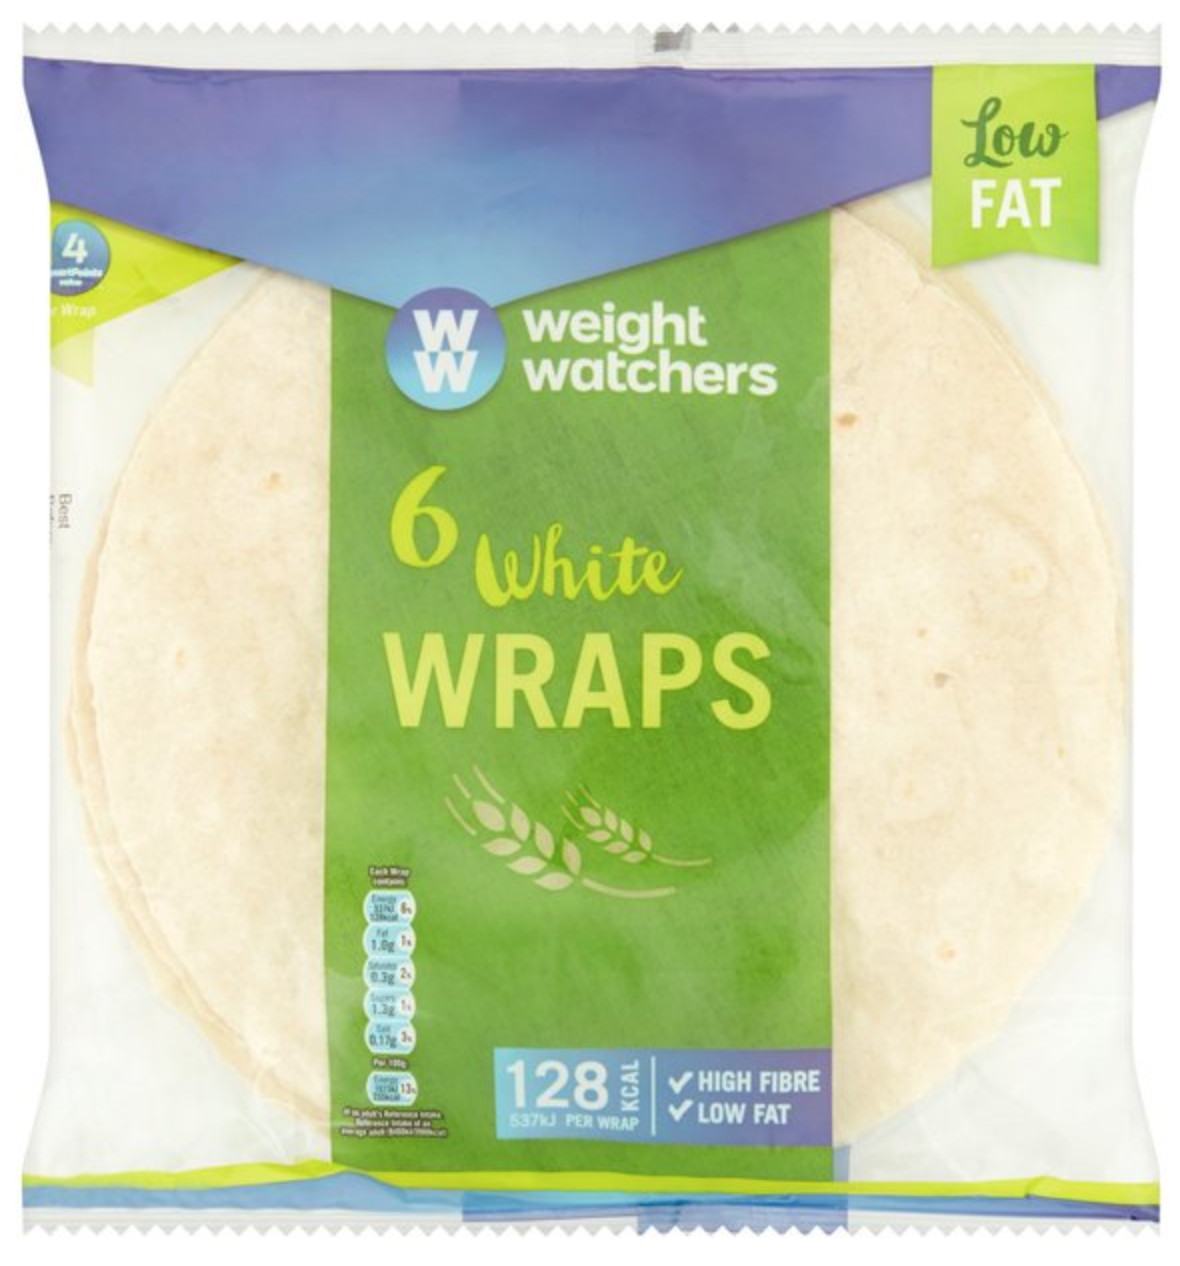 Weight Watchers Wraps Are Still A Healthy Extra B Choice